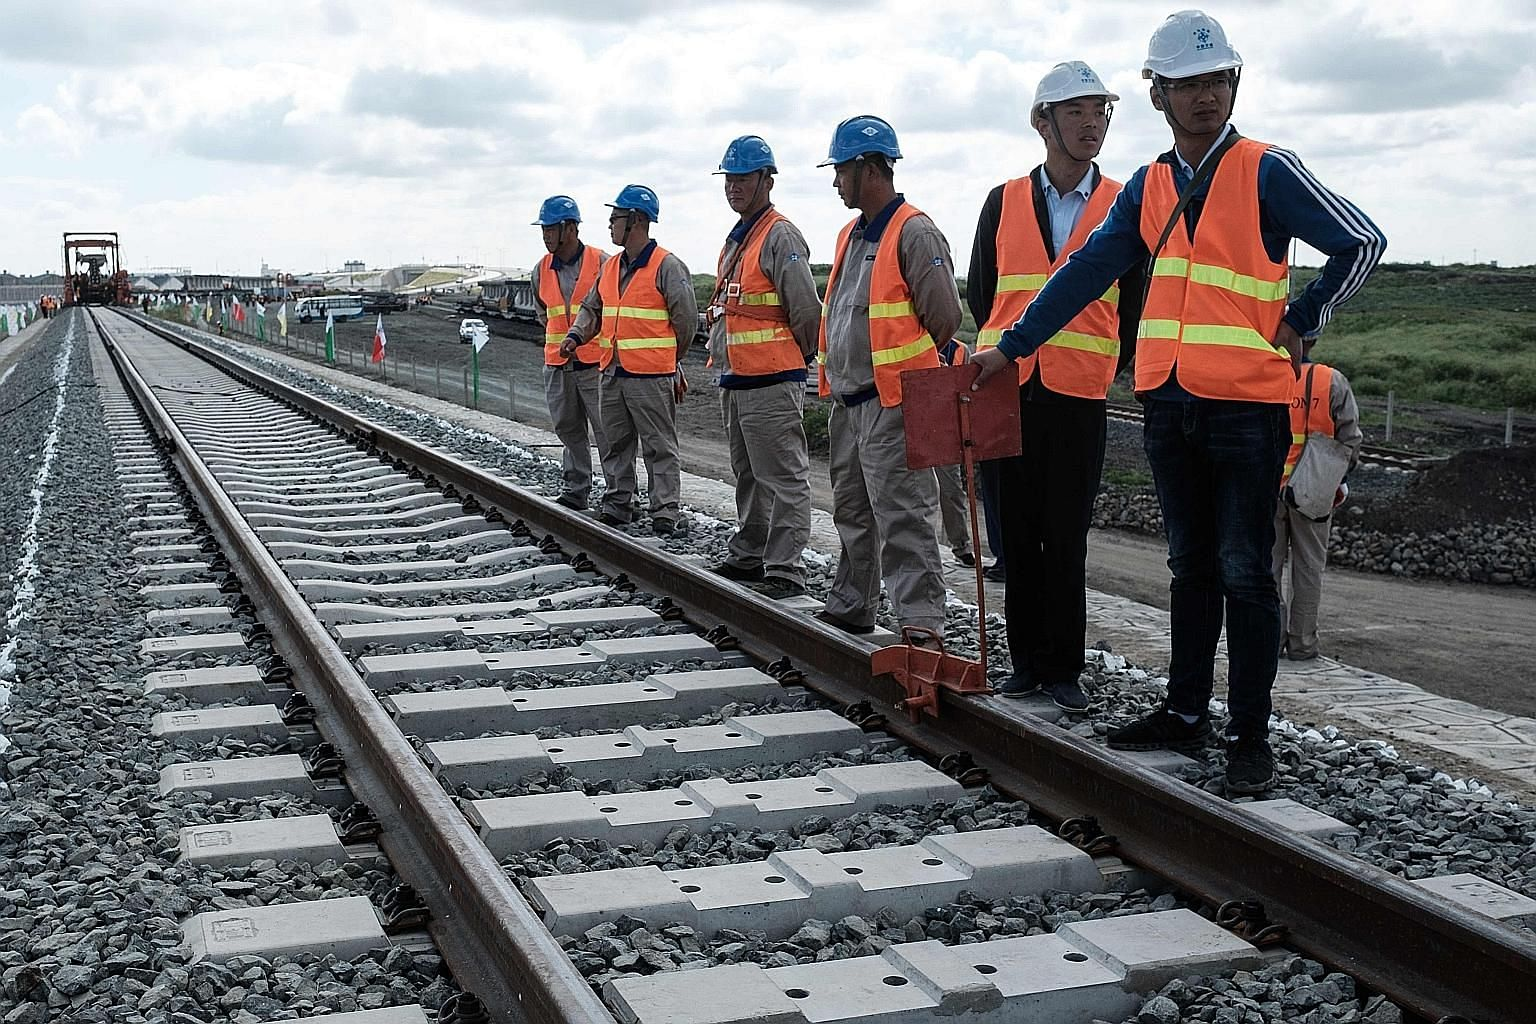 Chinese workers involved in a railway project in Kenya's Nairobi. China, unlike the former Soviet Union, extends its influence by trade or by building infrastructure in poorer countries.